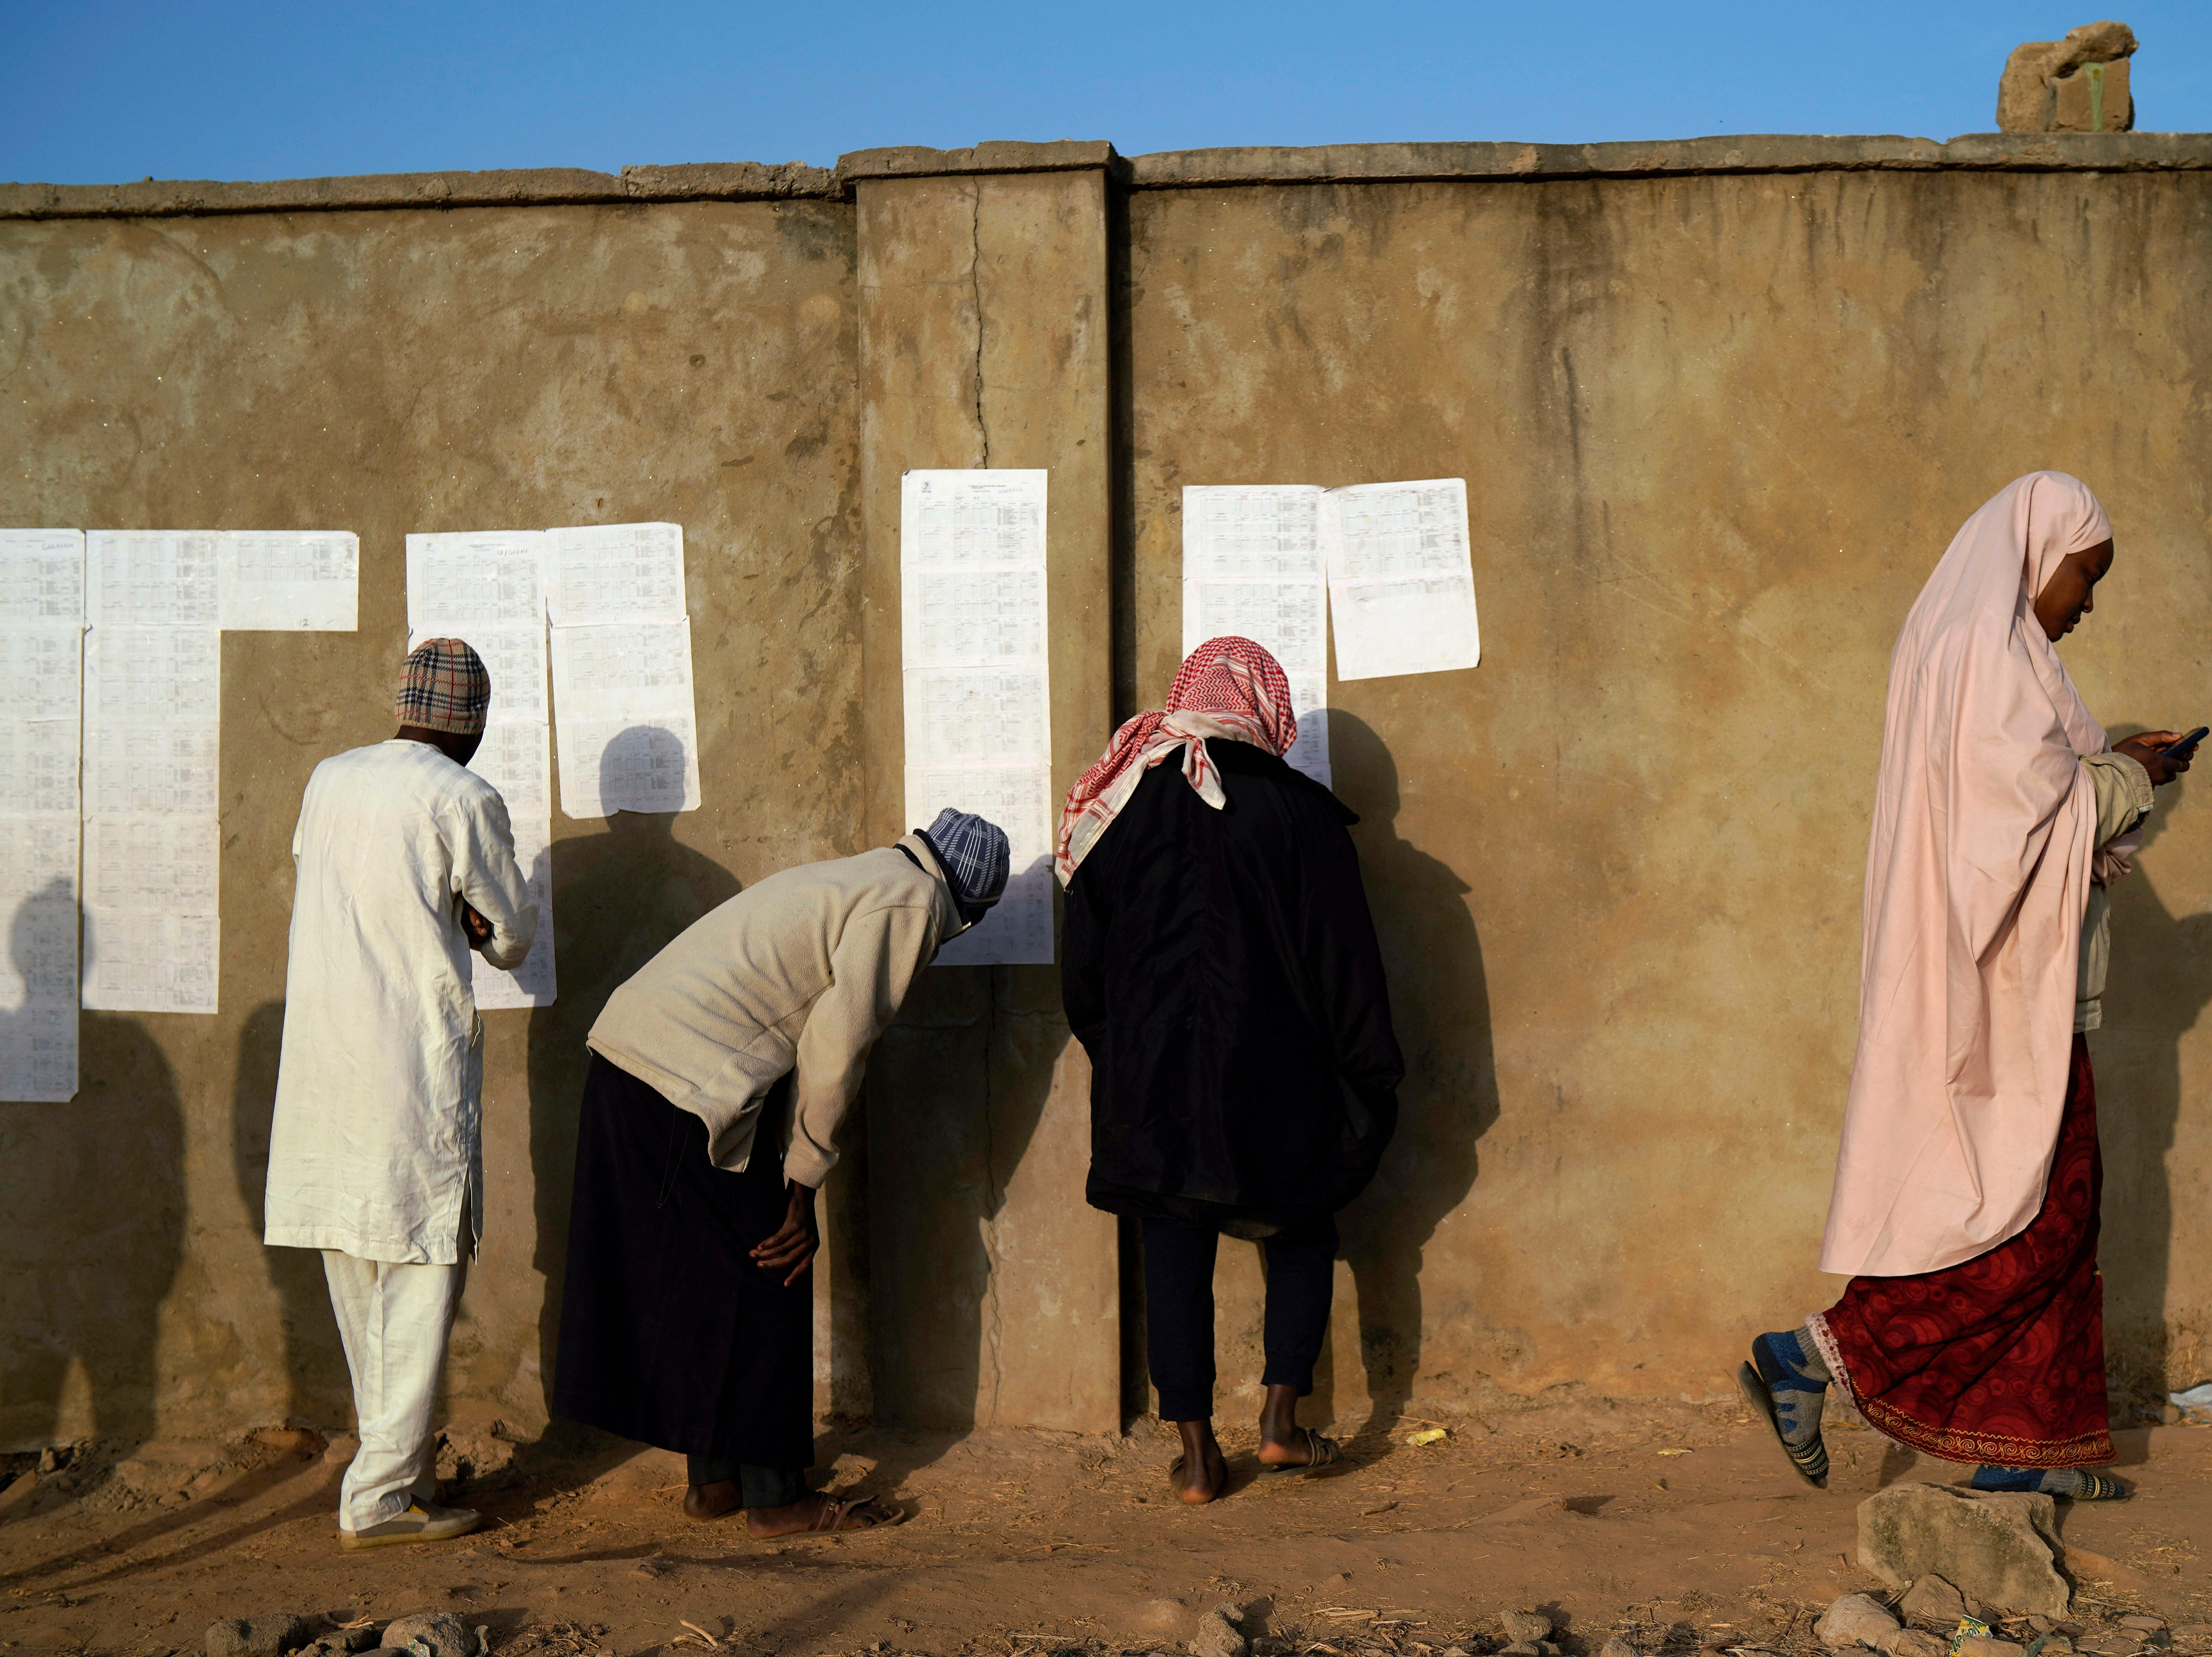 Nigerians check voters' lists at a polling station in Kaduna, Nigeria, Saturday, Feb. 16, 2019. Nigeria's electoral commission delayed the presidential election until Feb. 23, making the announcement a mere five hours before polls were set to open.